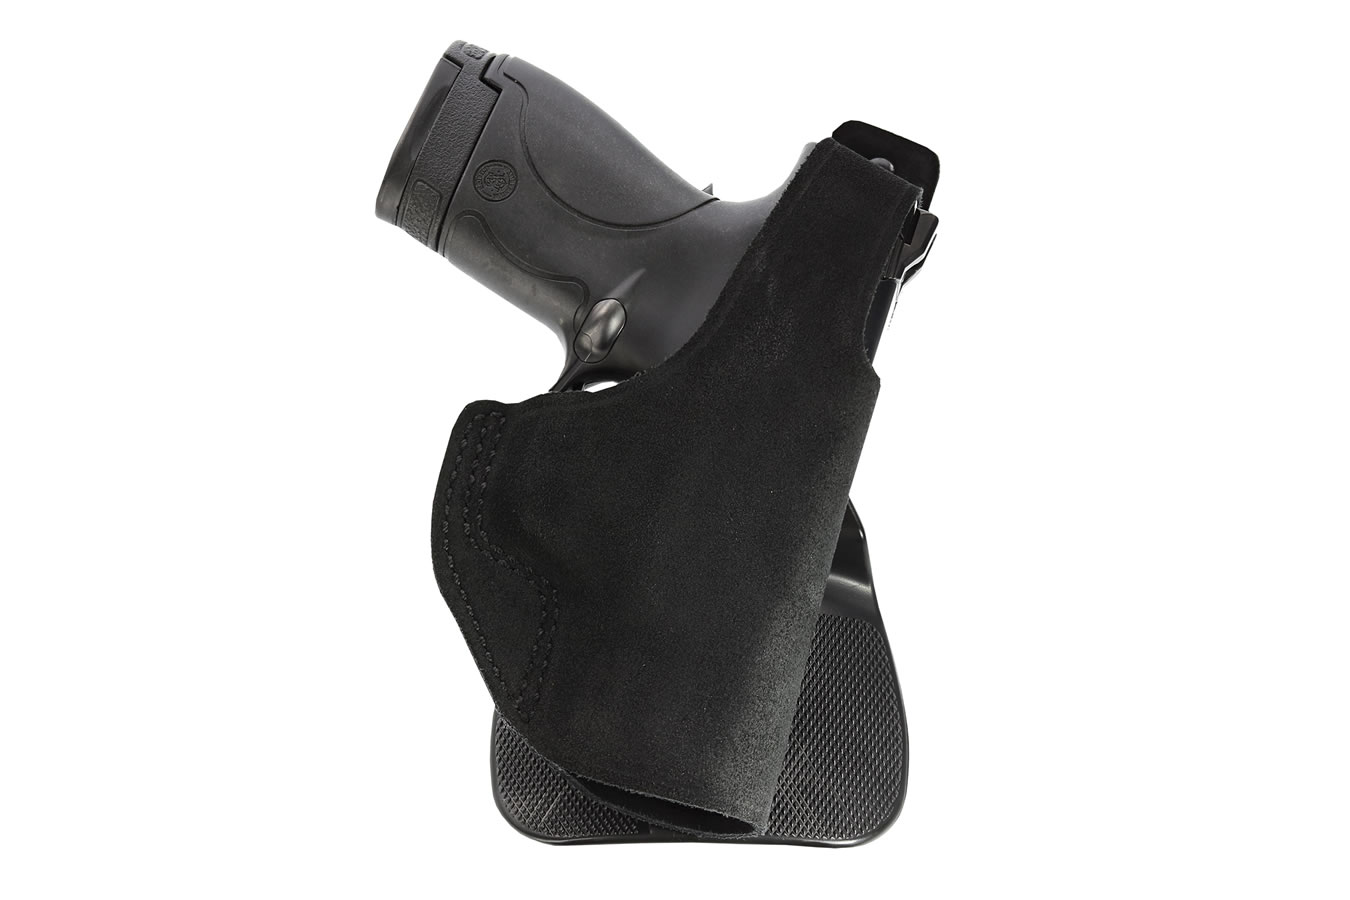 Paddle Lite Holster Springfield XD Mod 2 9/40 3 Inch